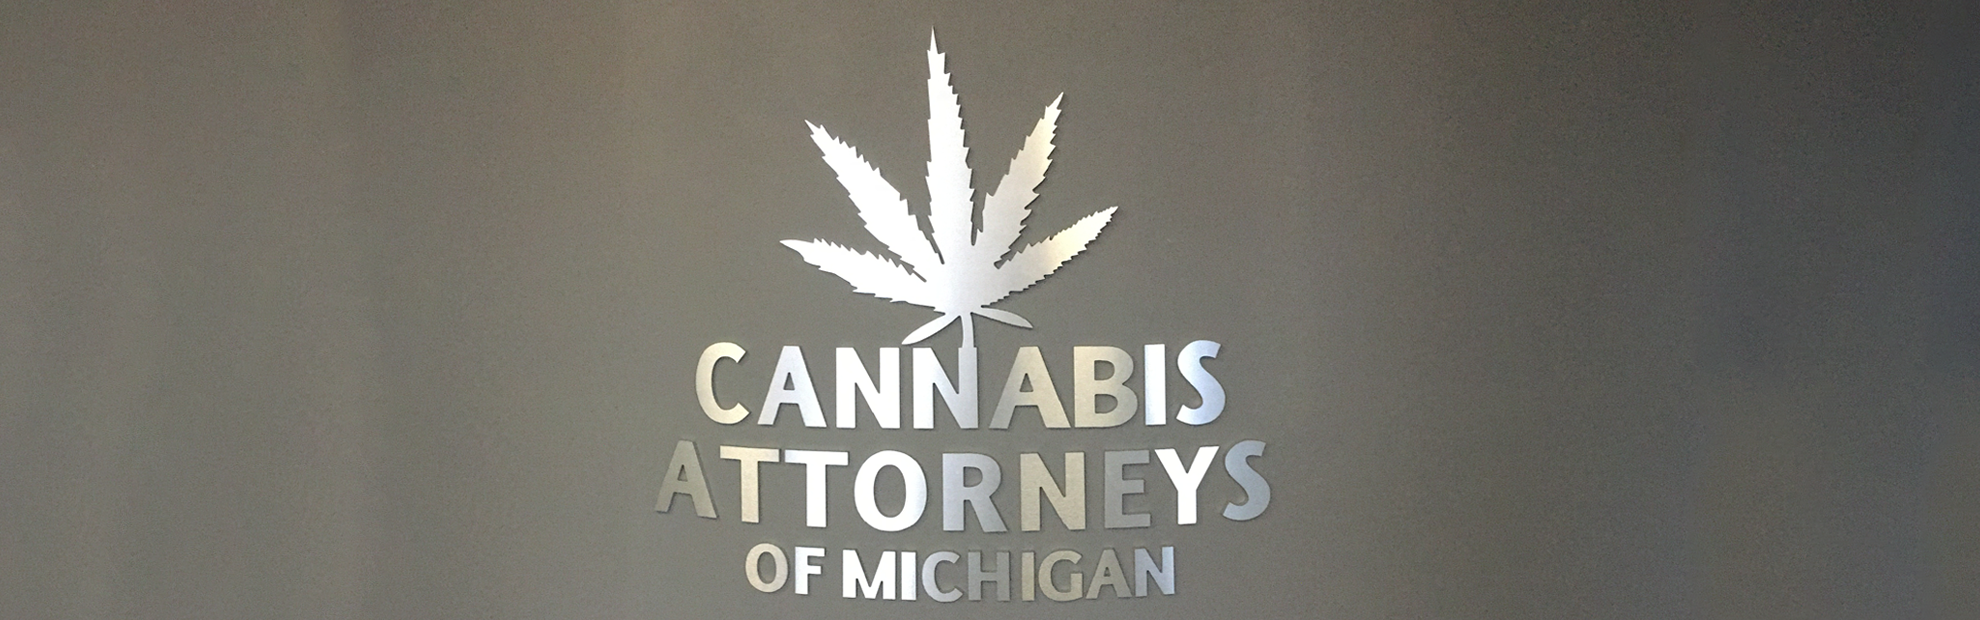 Cannabis Attorneys of Michigan Office